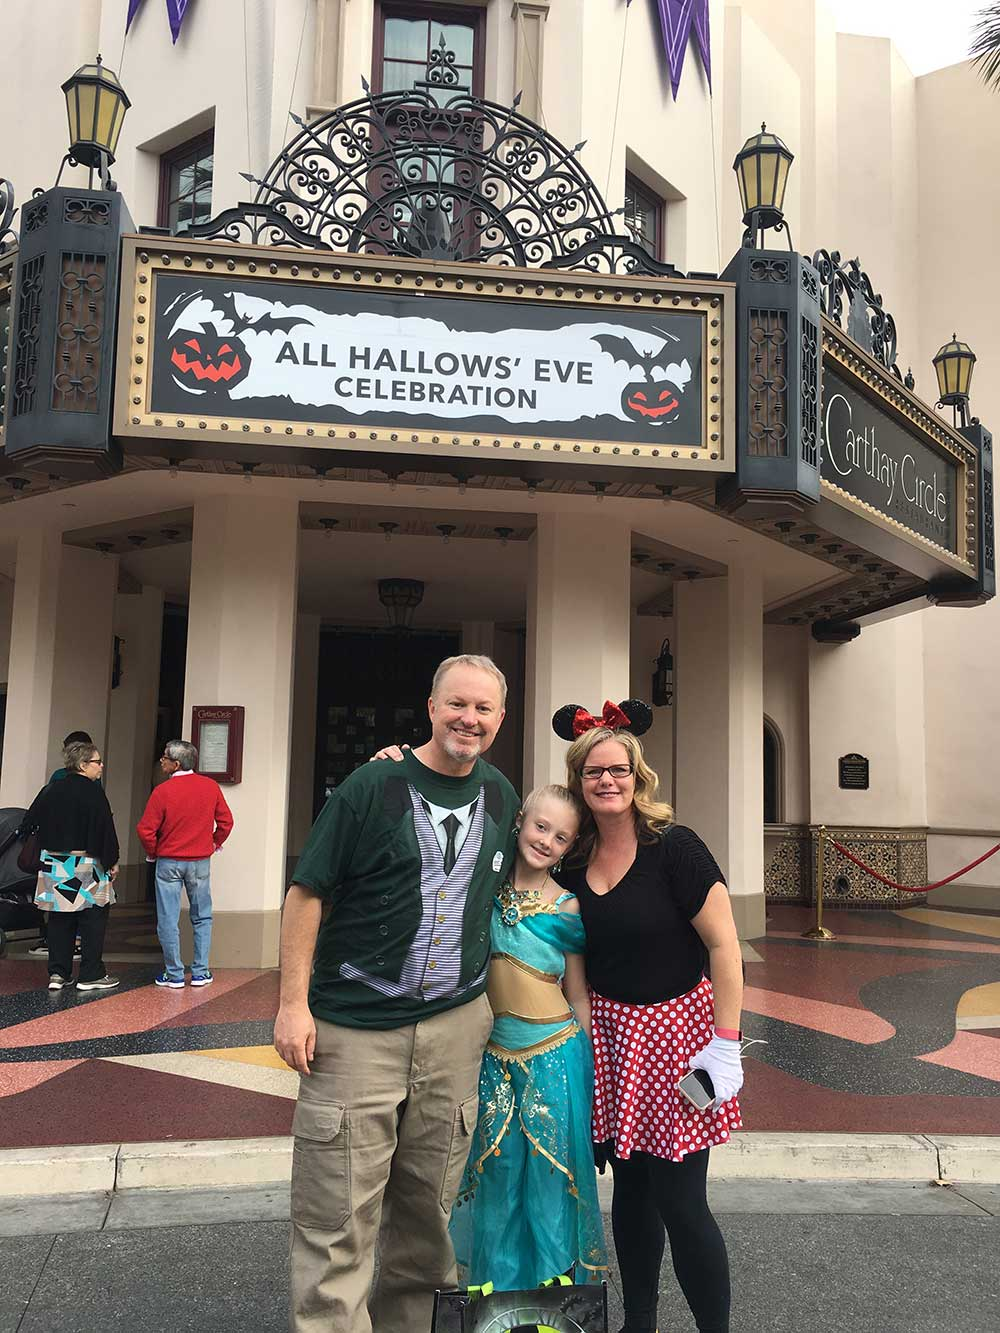 Special Events at Disneyland A Guide to Amazing Fun Hallows Eve